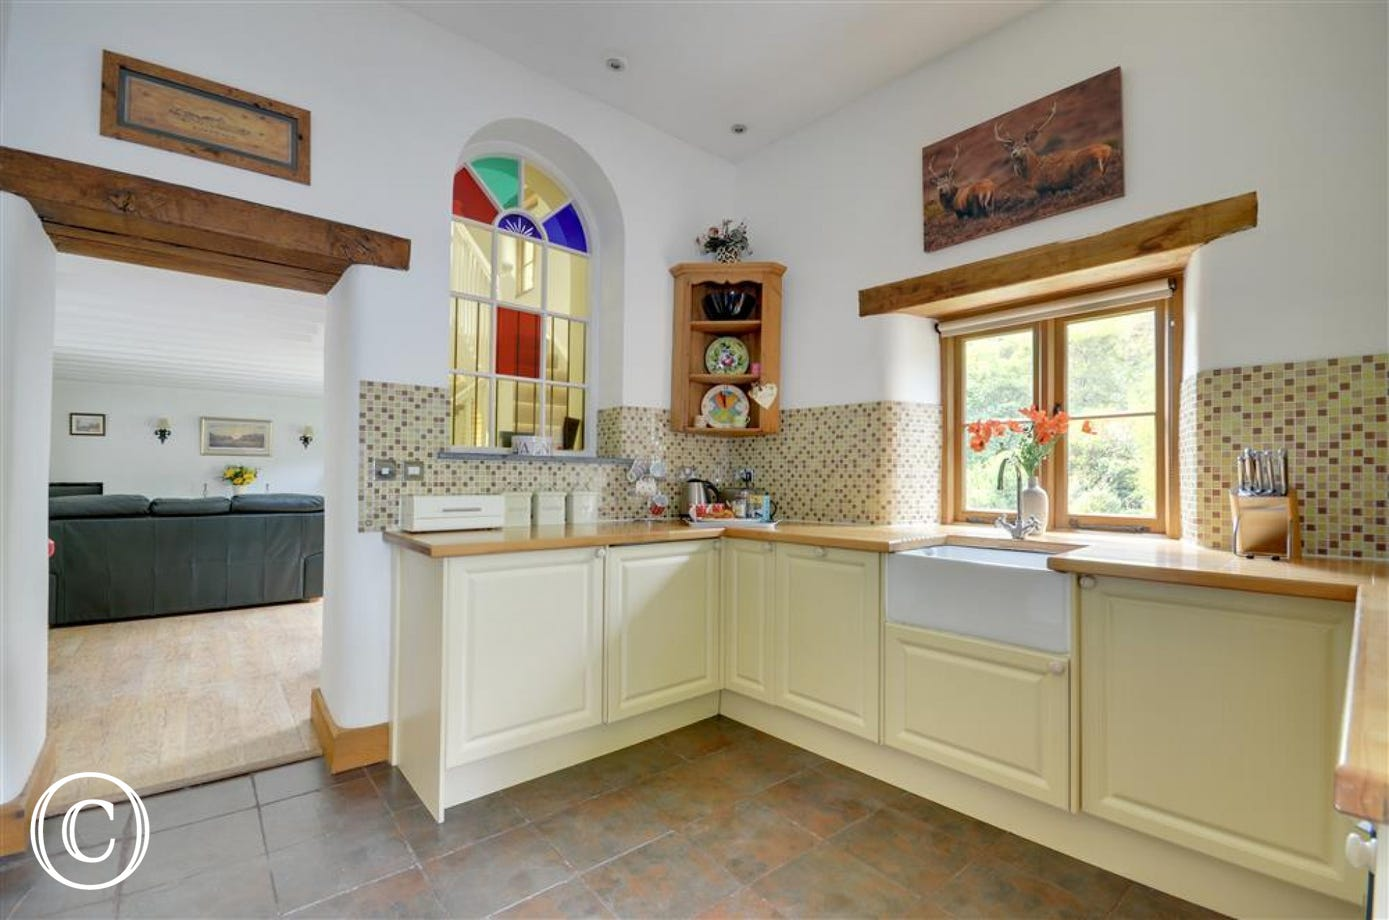 Belfast style skin in the kitchen and stain glass feature window